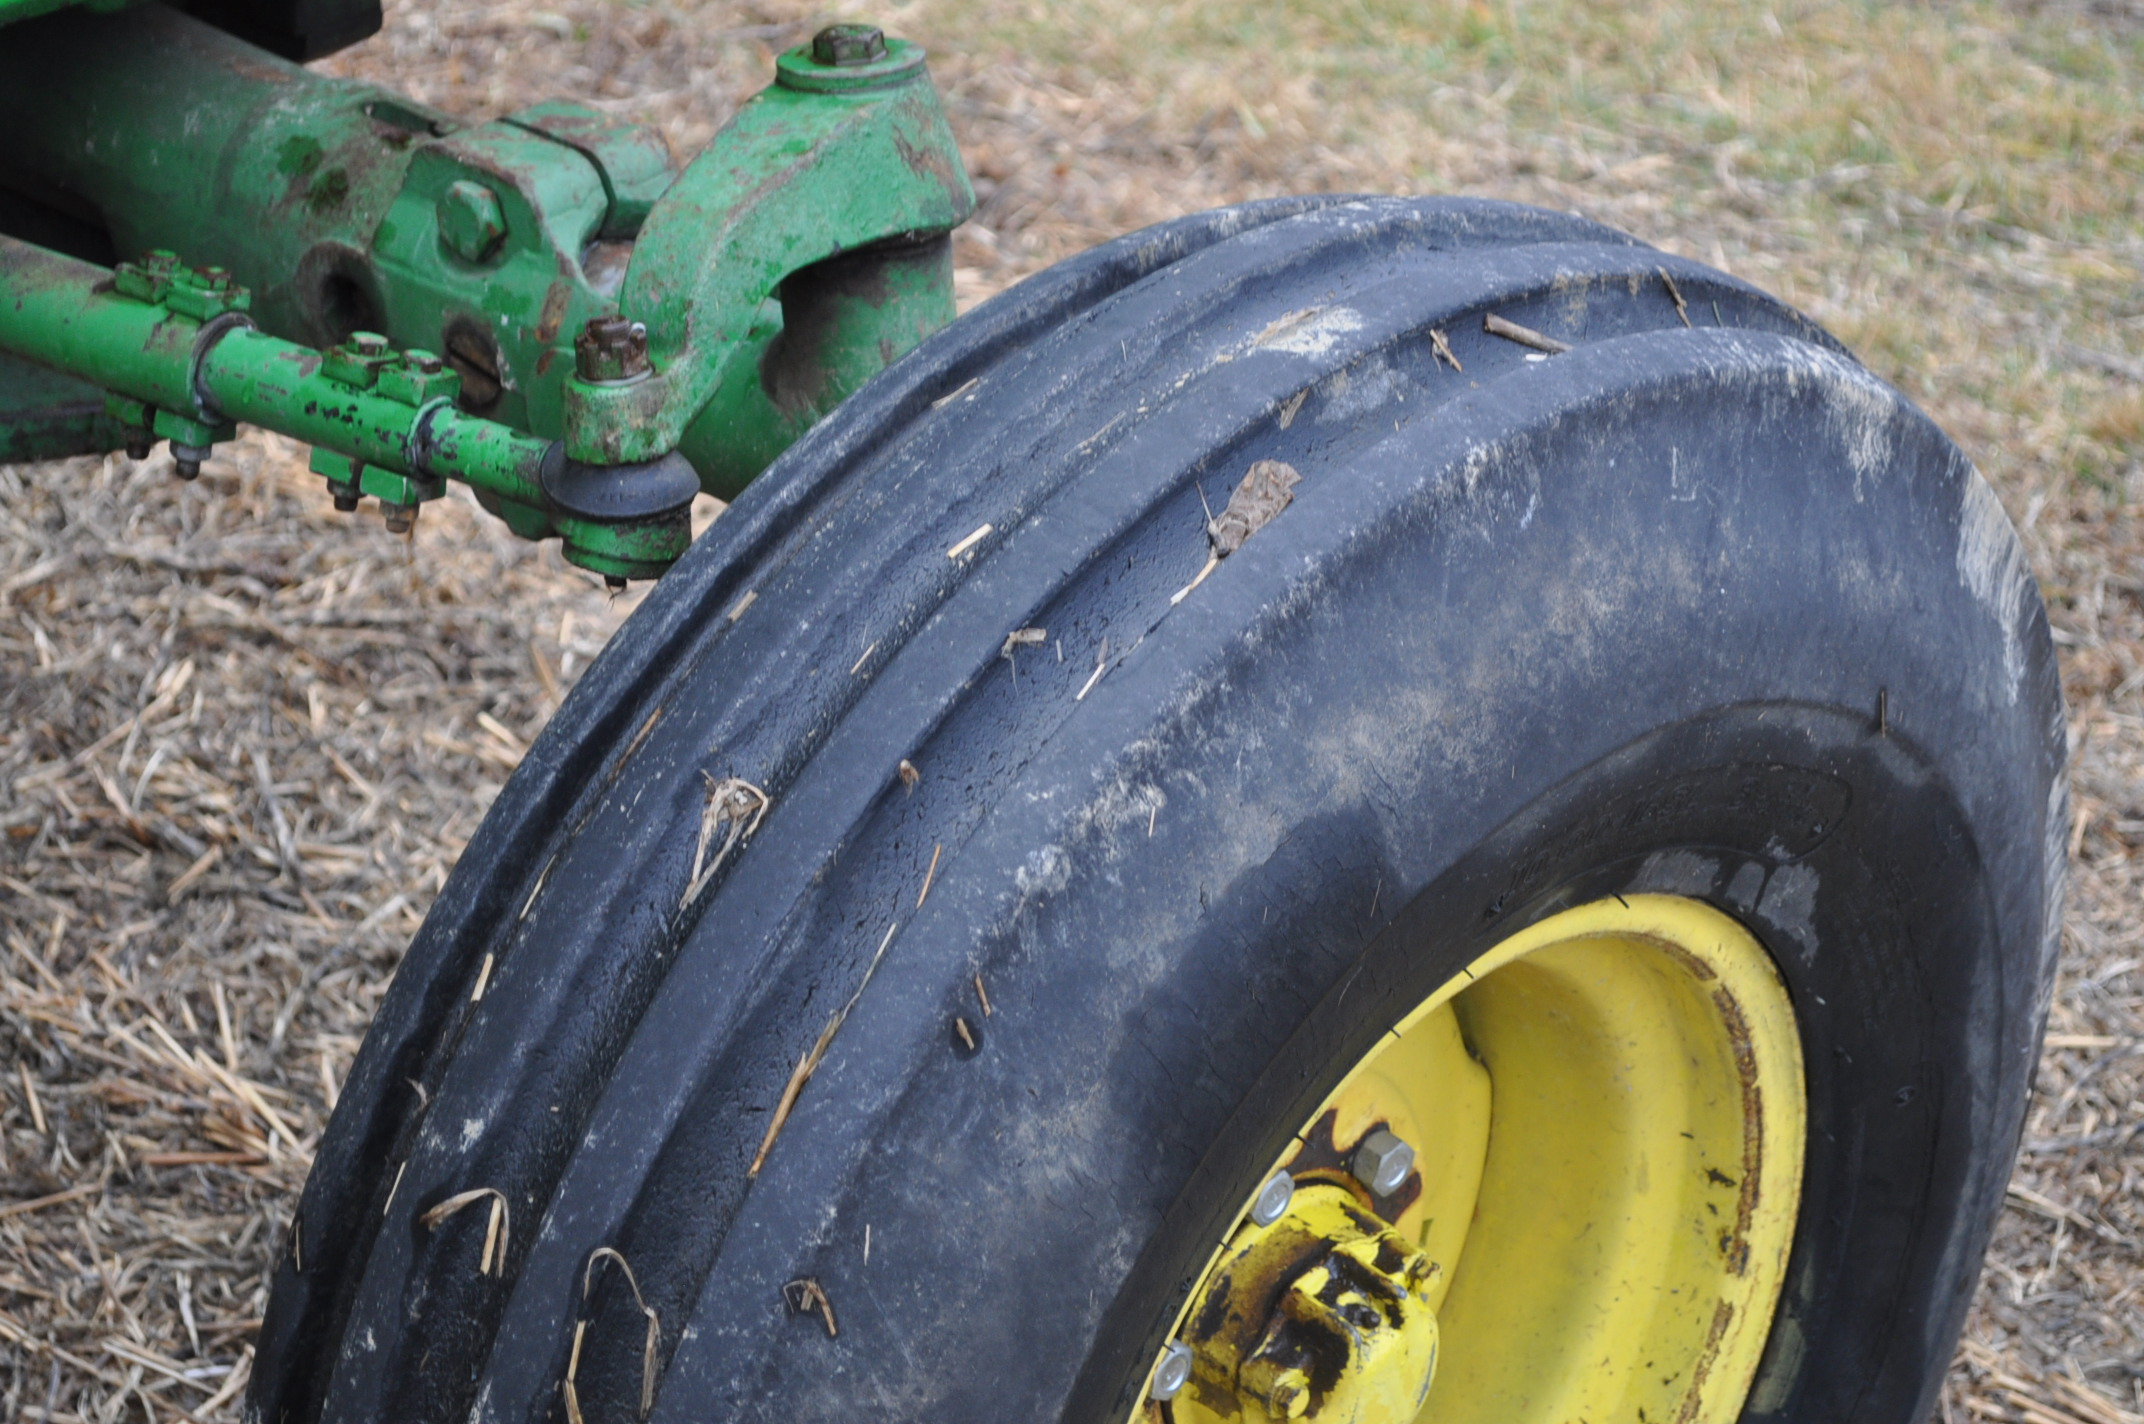 John Deere 4320 tractor, diesel, 18.4-38 duals, 10.00-16 wide front, Syncro, 2 hyd remotes, 540/1000 - Image 10 of 20